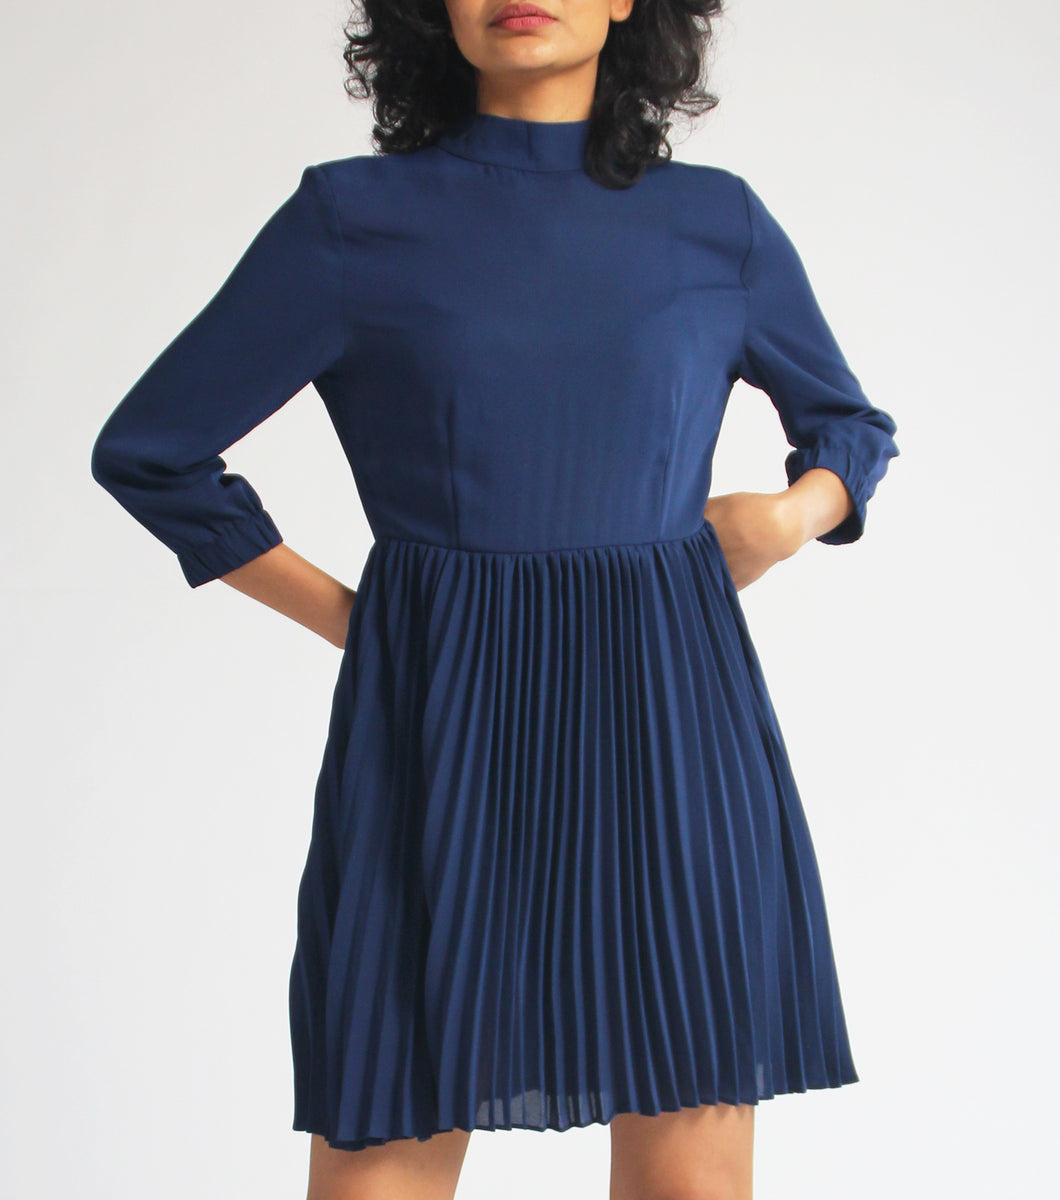 Lerna Quarter Sleeves Dress w/ Pleat Details (Navy Blue)